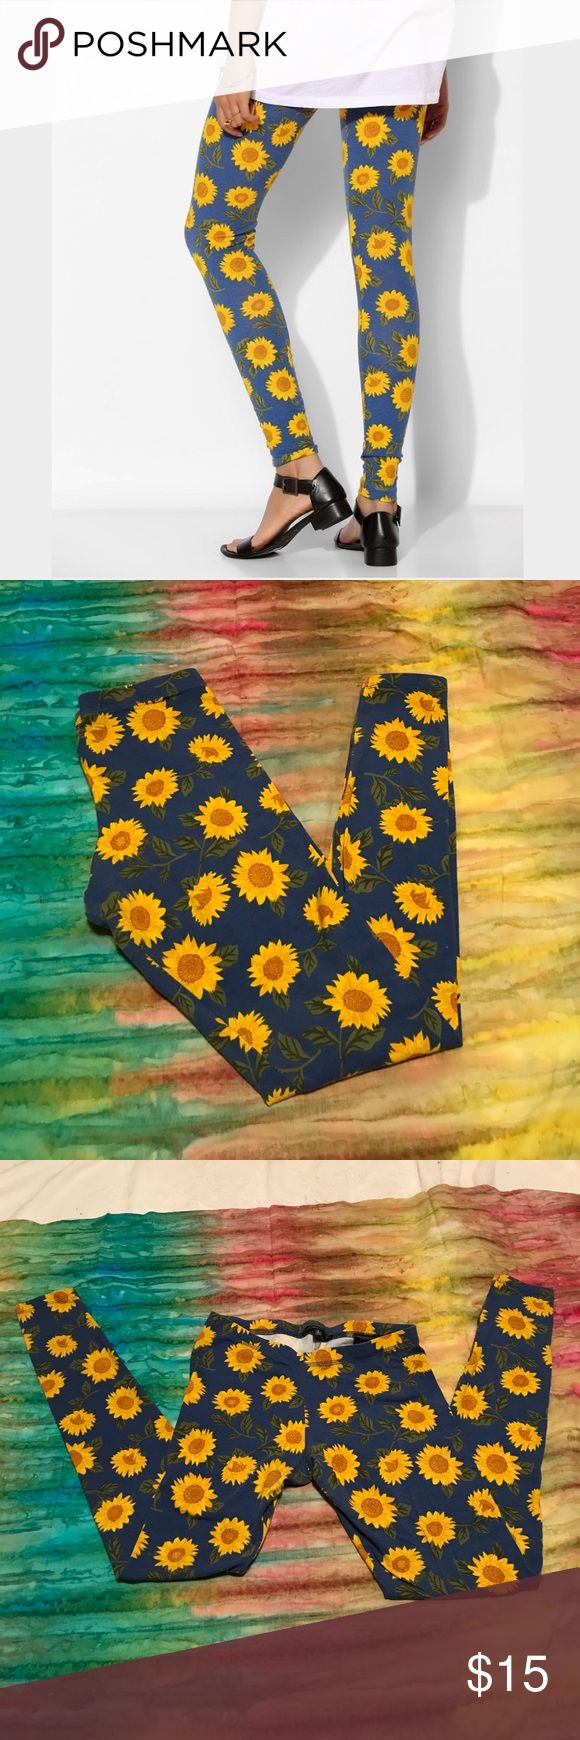 Urban outfitters sunflower leggings Adorable blue leggings with sunflower pattern. Worn once. Truly madly deeply from urban outfitters. Urban Outfitters Pants Leggings